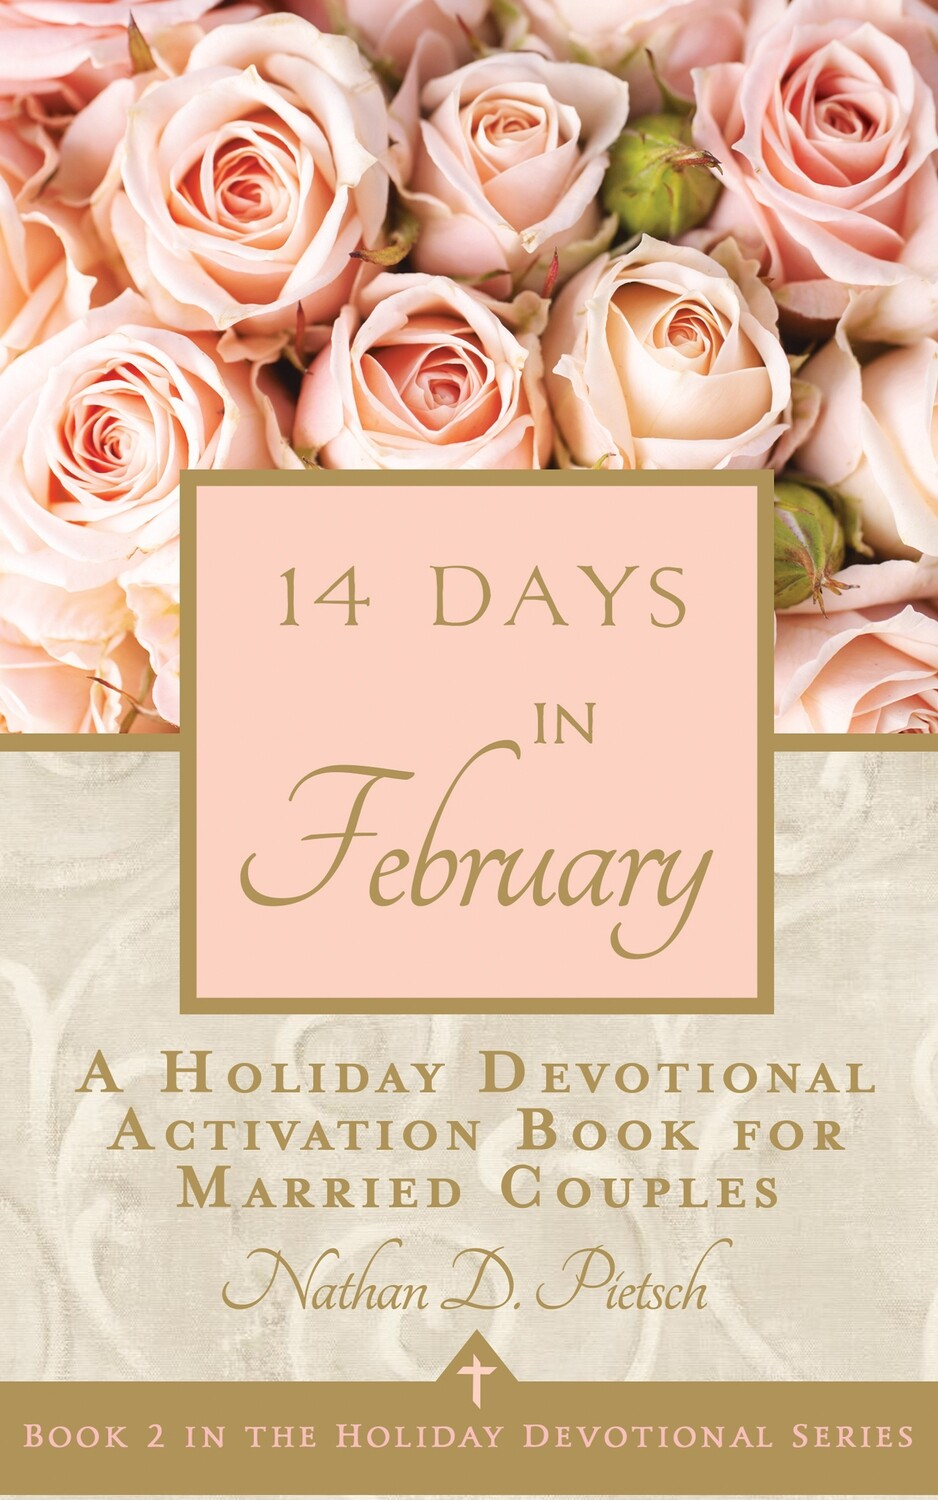 14 Days in February (Holiday Devotional Series, Book 2)